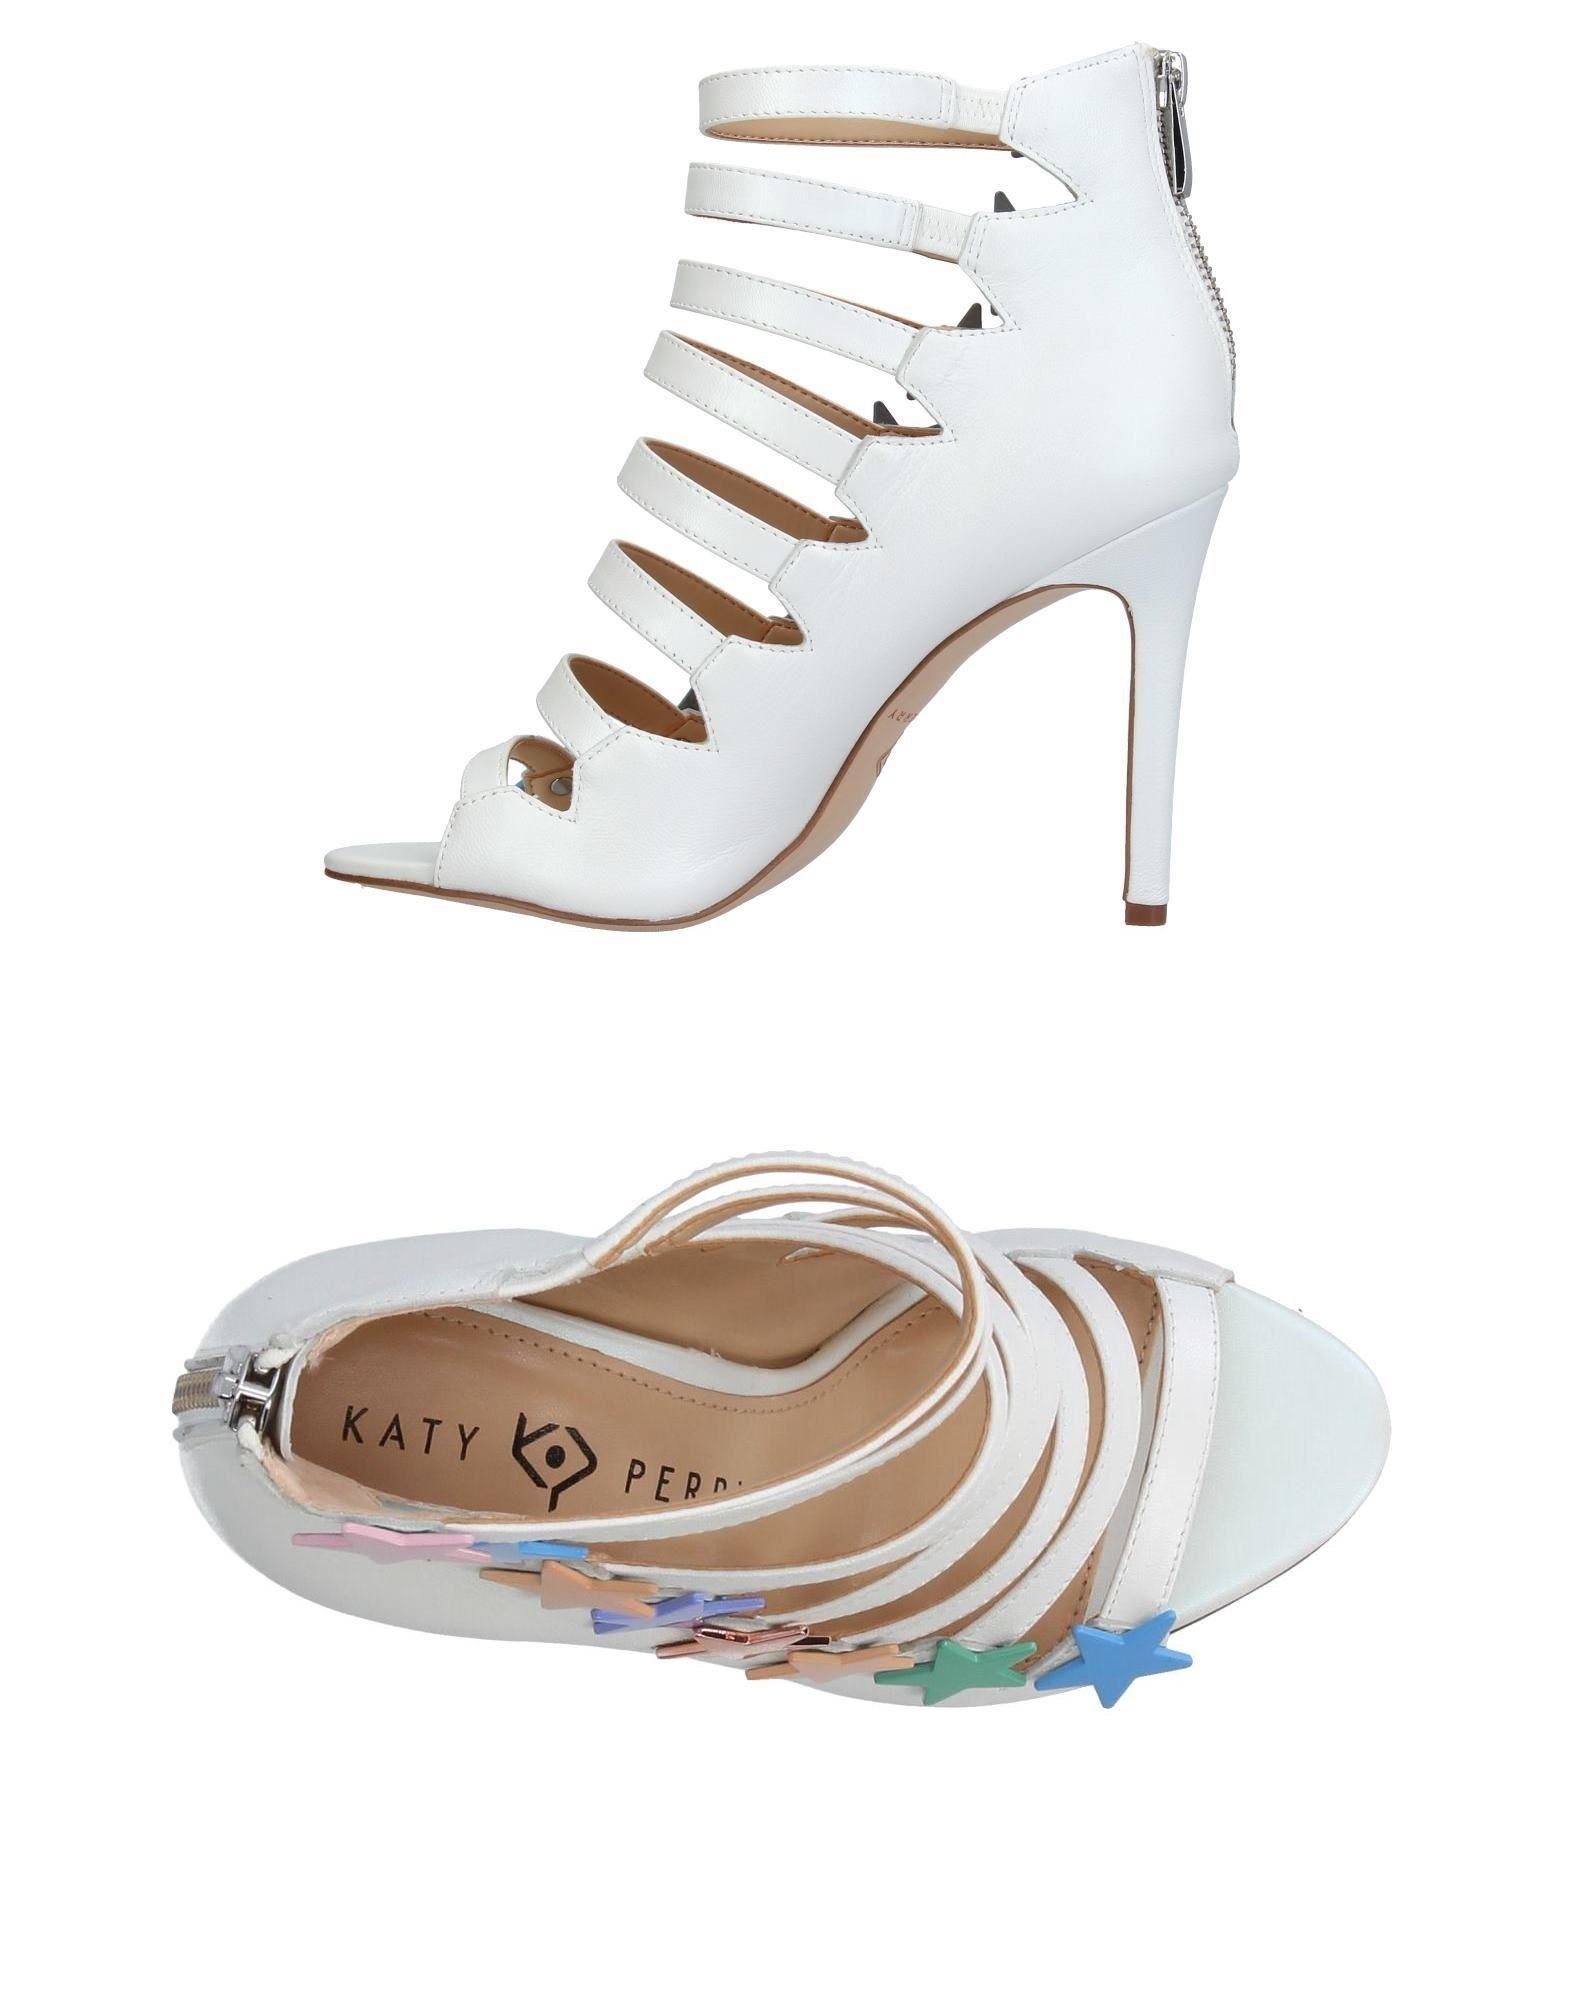 4432a2b15e0b Katy Perry Sandals In White